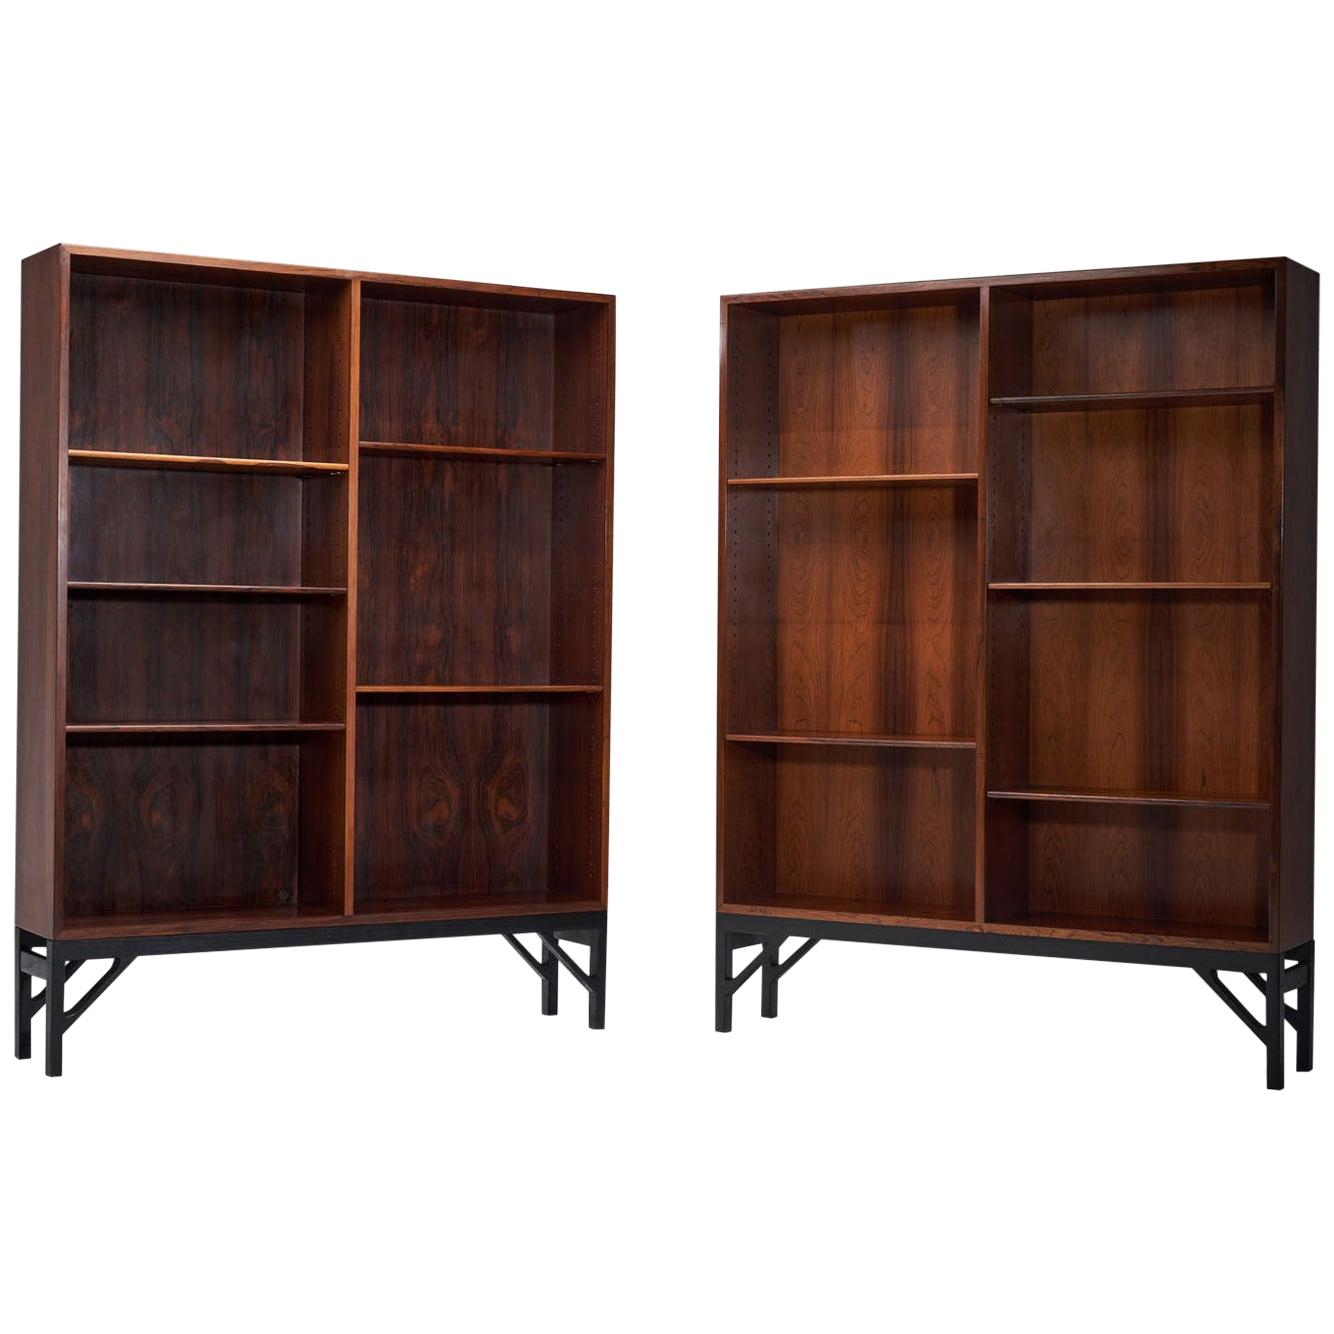 Two Bookcases by Børge Mogensen for C. M. Madsen, Denmark, 1950s